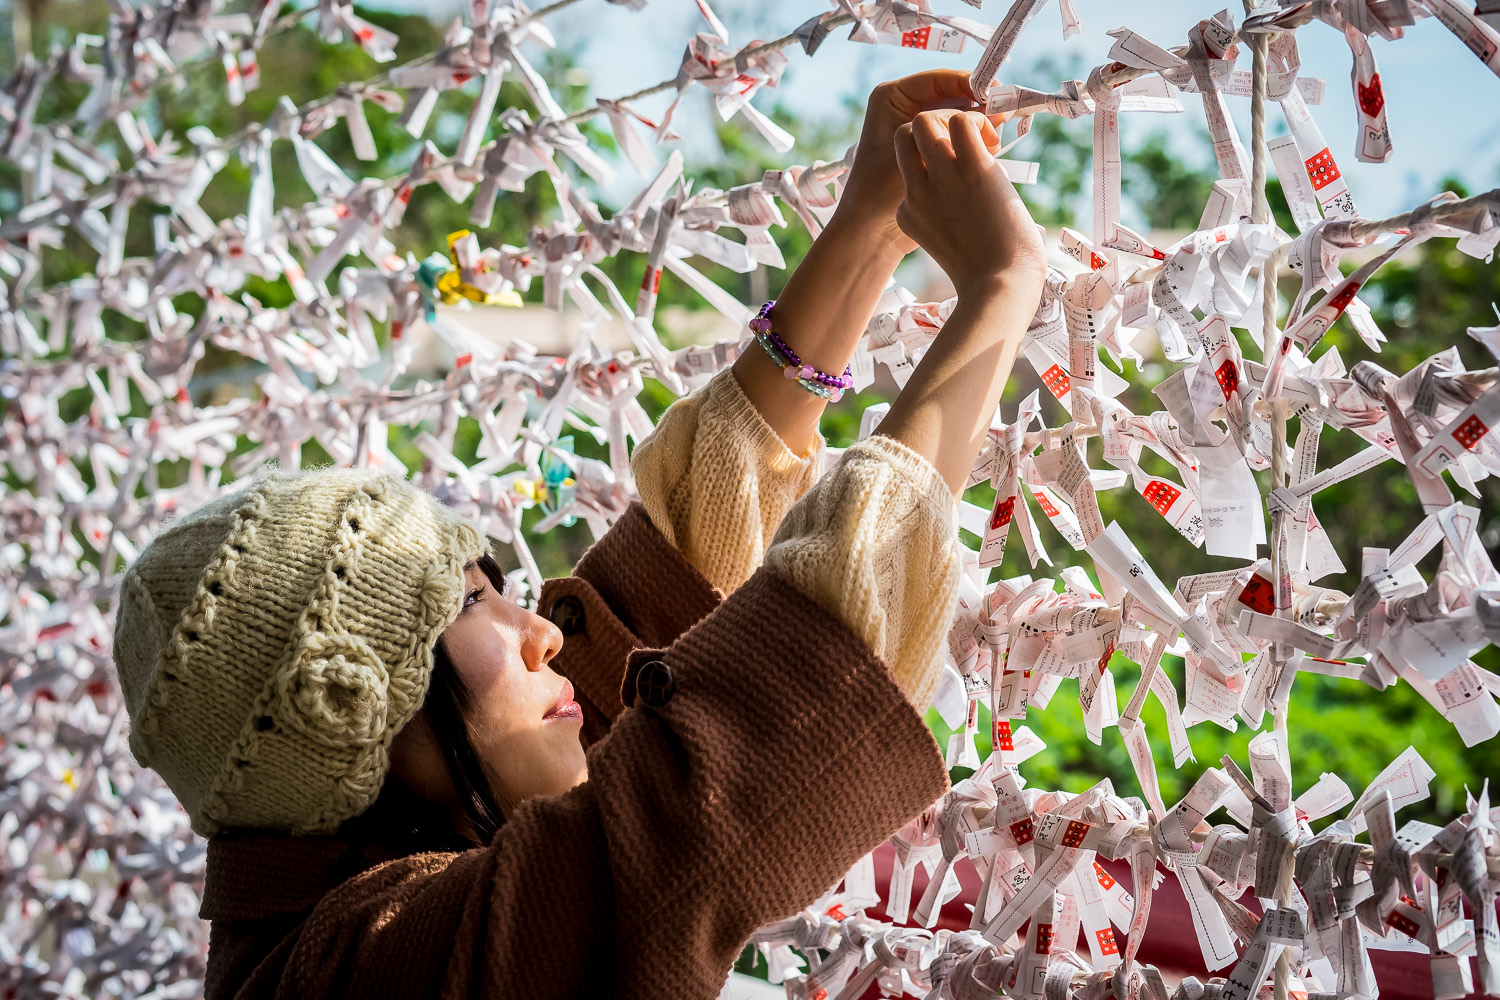 A woman ties her Omikuji onto a line at a shrine in Okinawa, Japan. Omikuji are traditional Fortune-telling papers purchased at shrines in Japan during Hatsumode (A person's first shrine visit of the year).